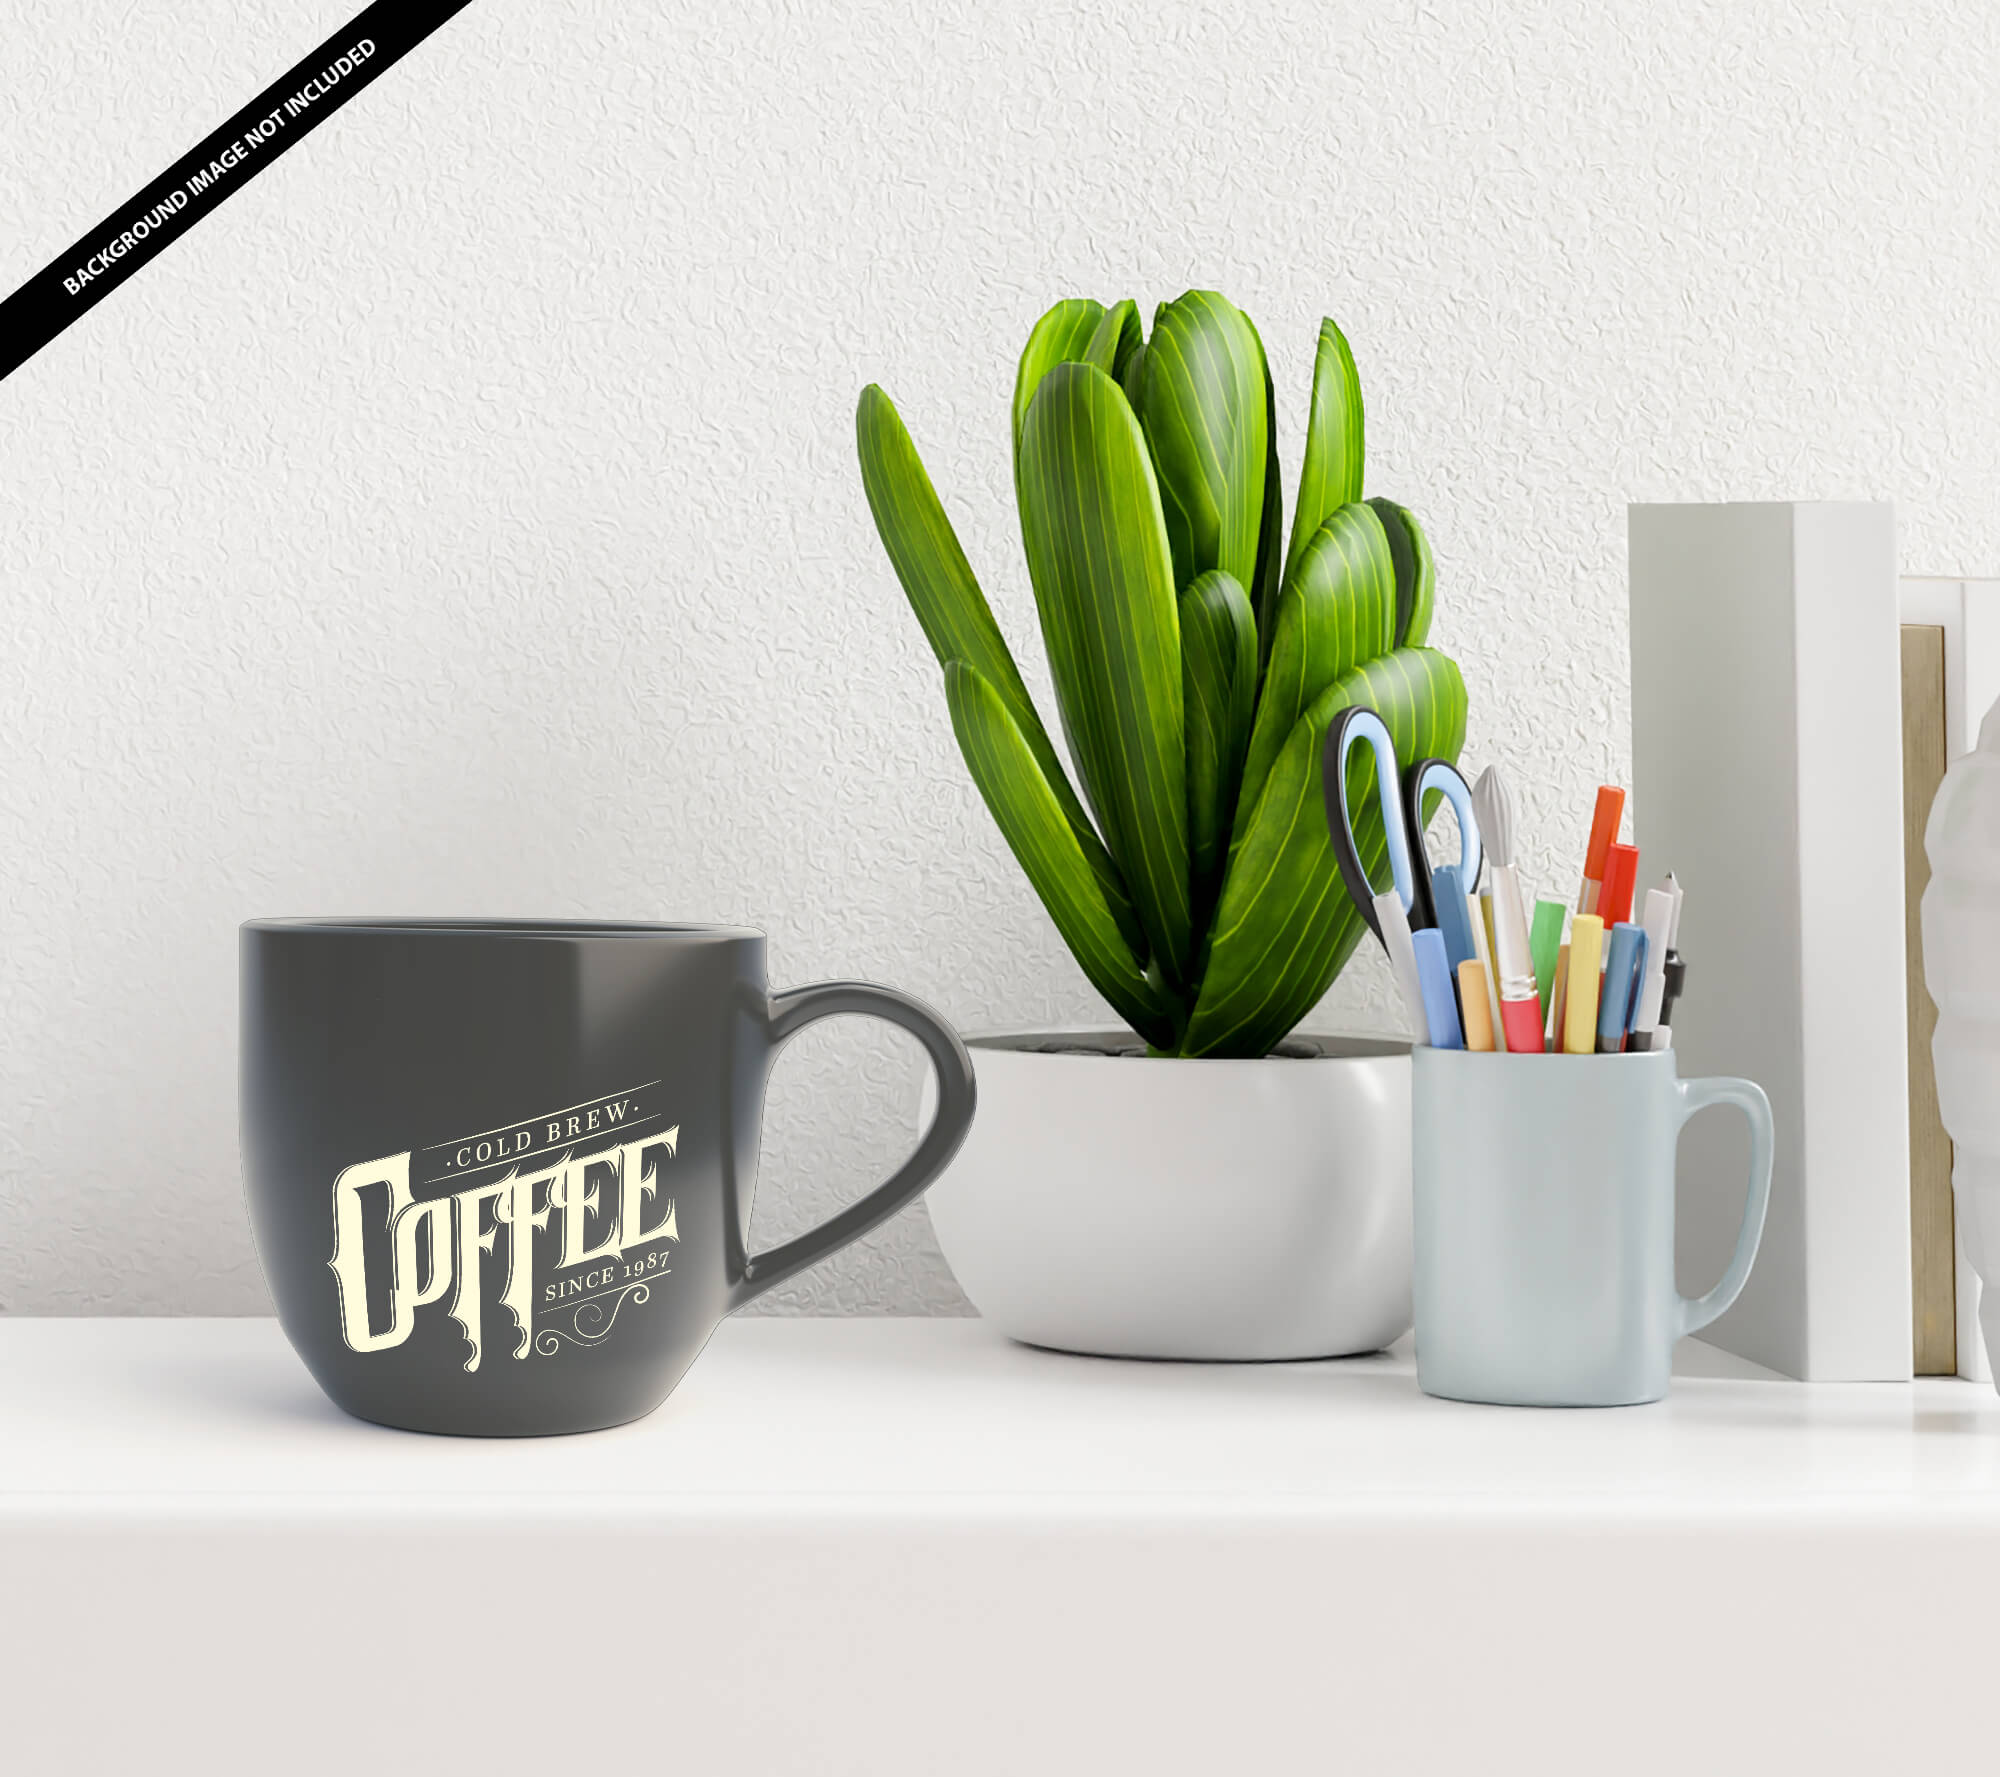 Free Black Cup Mockup PSD Template